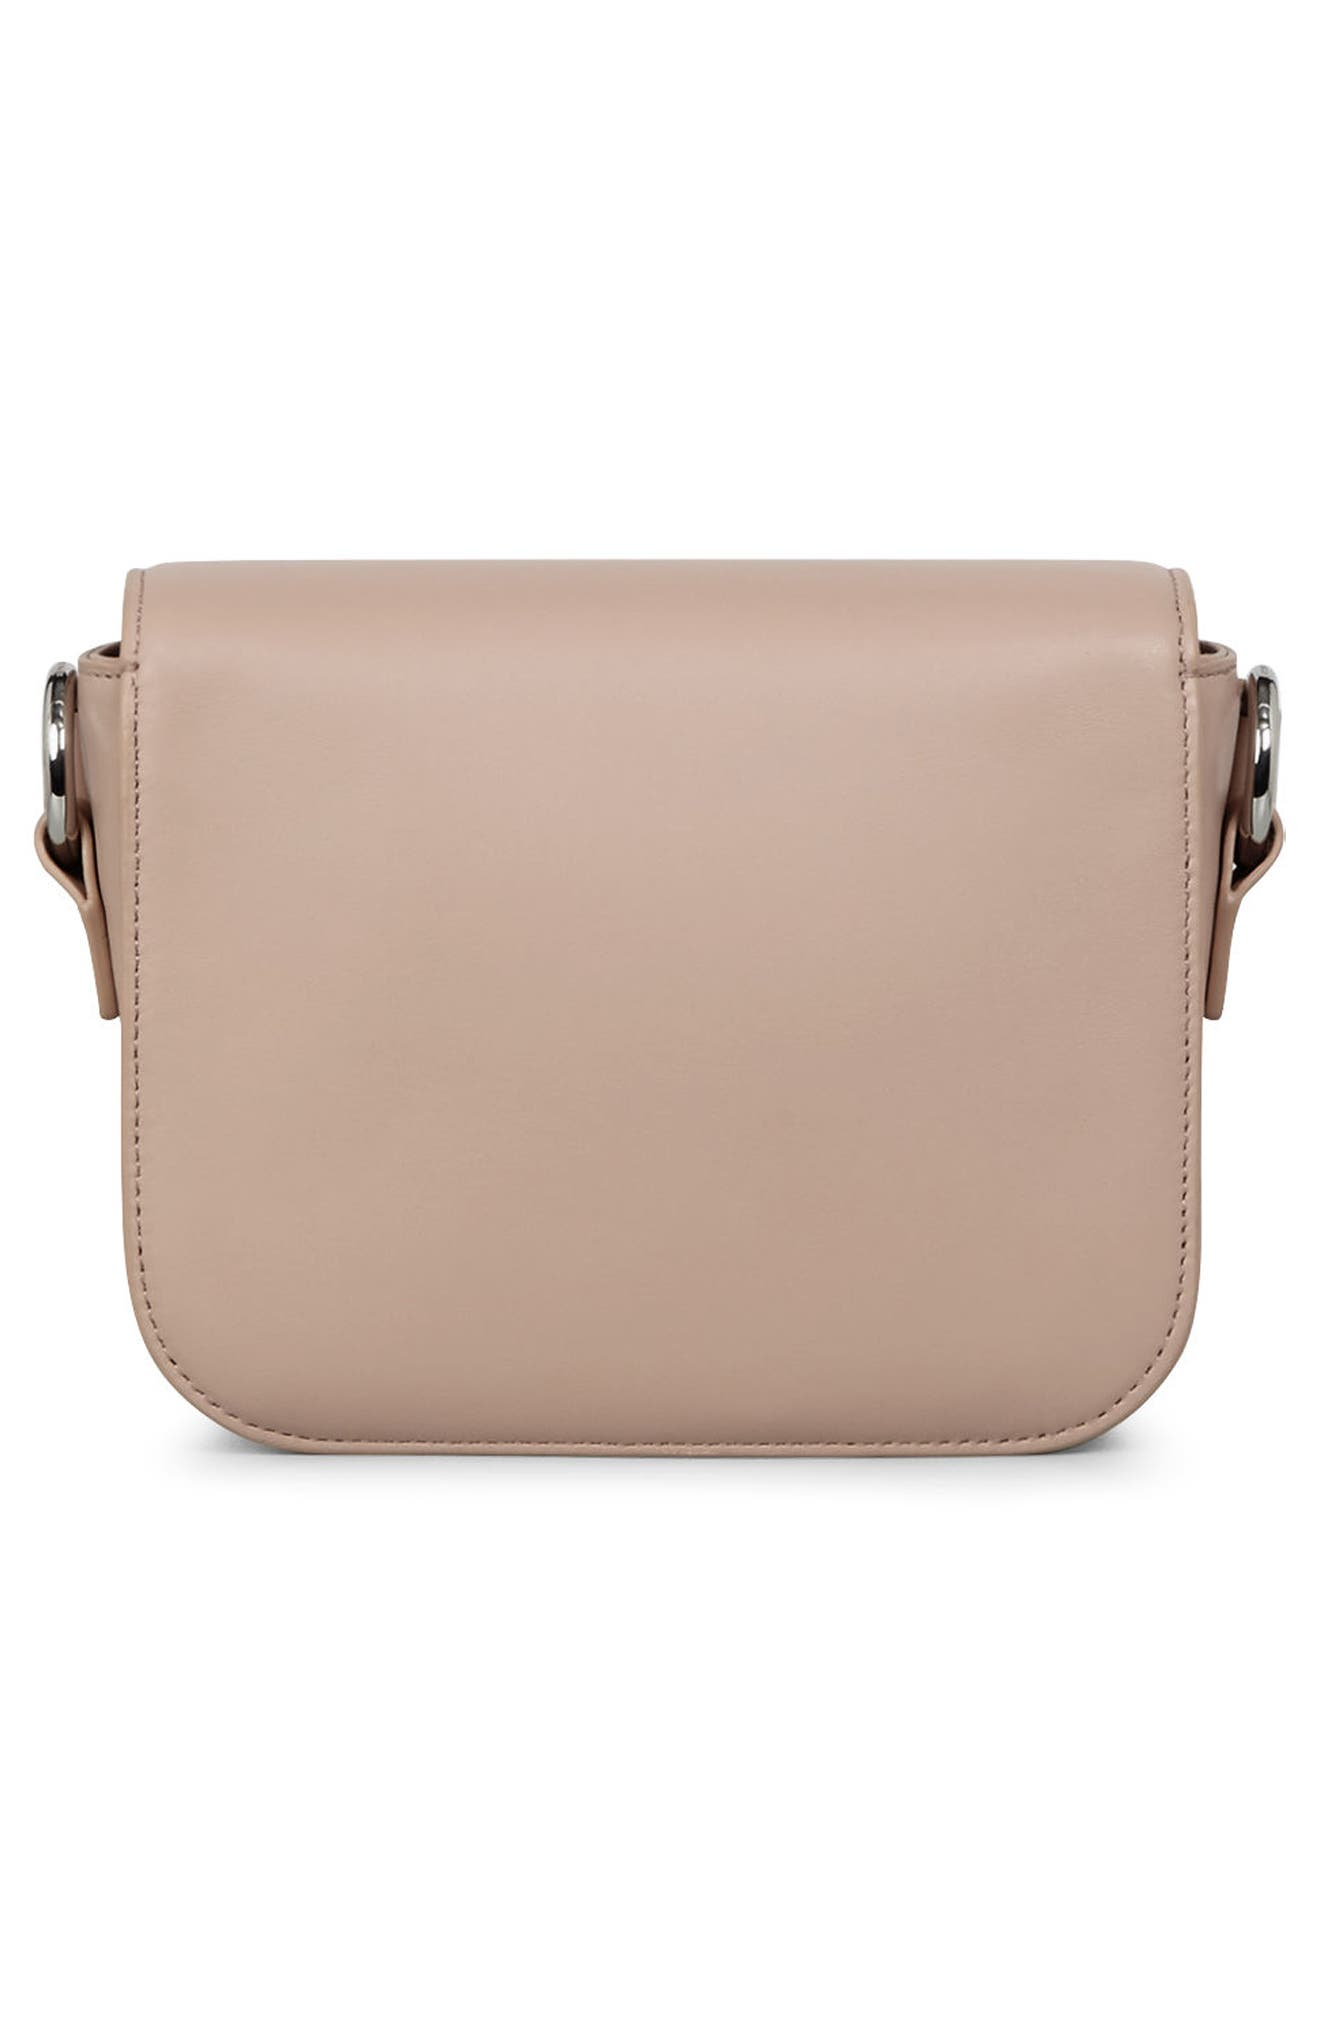 Suzi Studded Leather Clutch,                             Alternate thumbnail 3, color,                             Natural